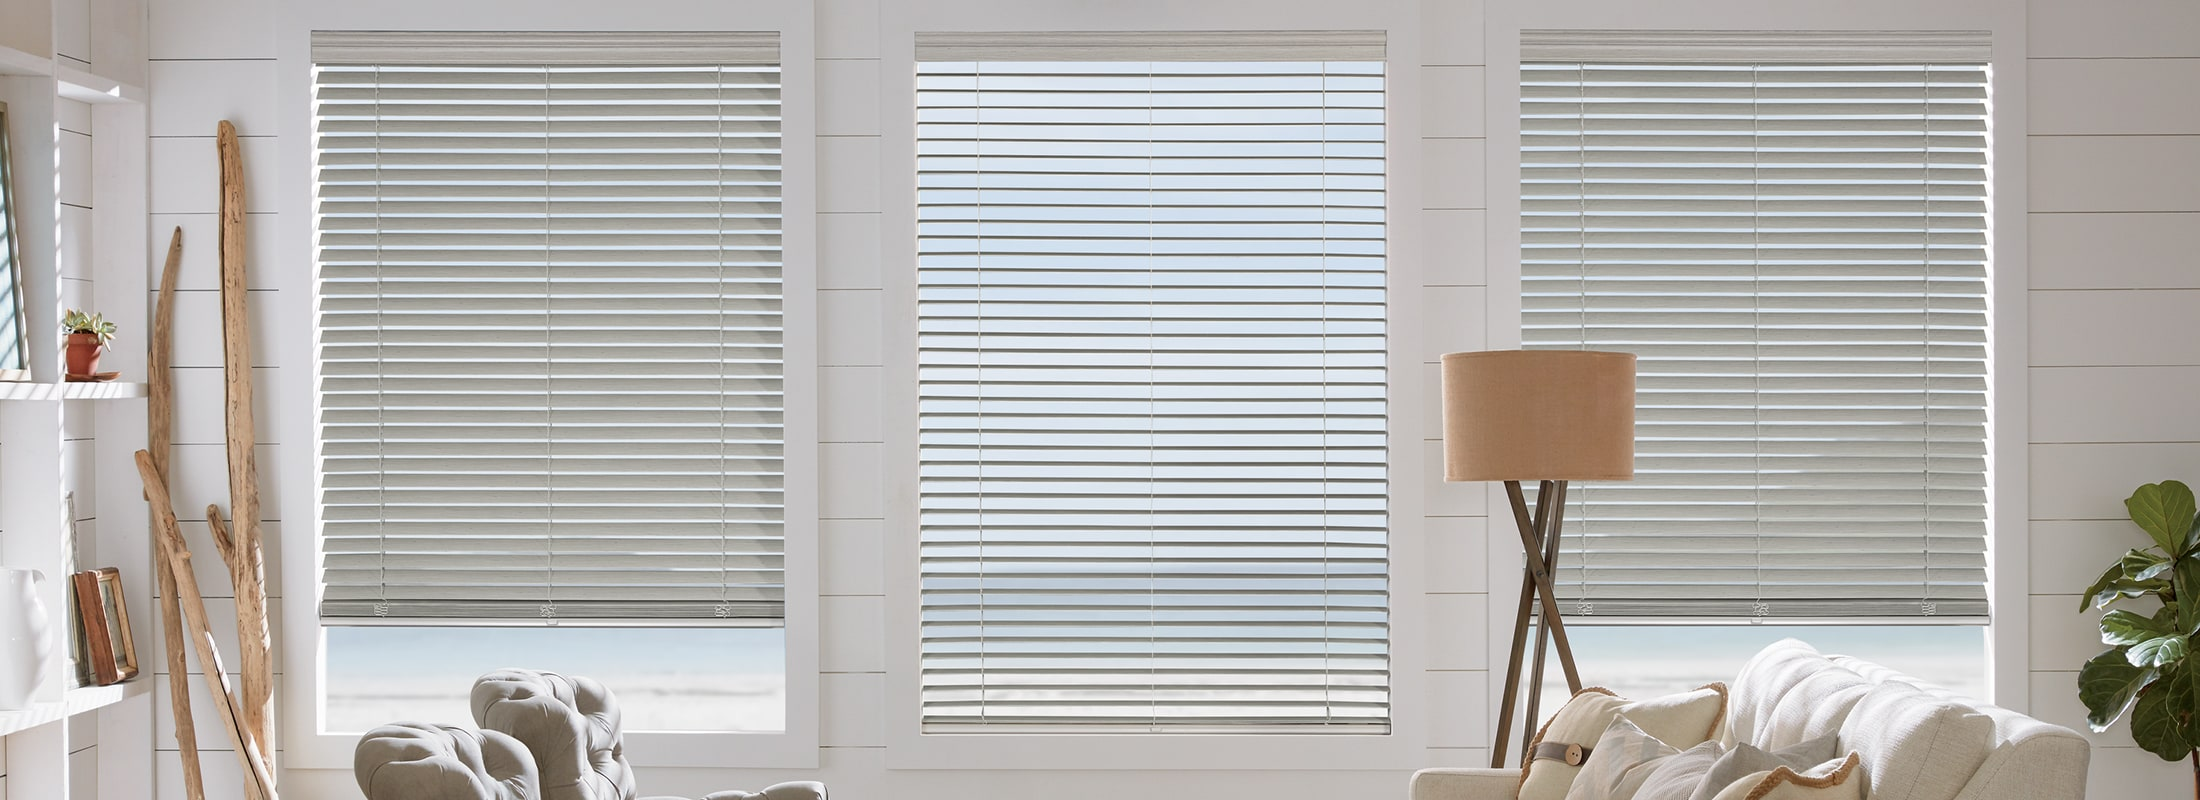 Faux wood blinds in TruGrain Coastal Deco Gray - EverWood